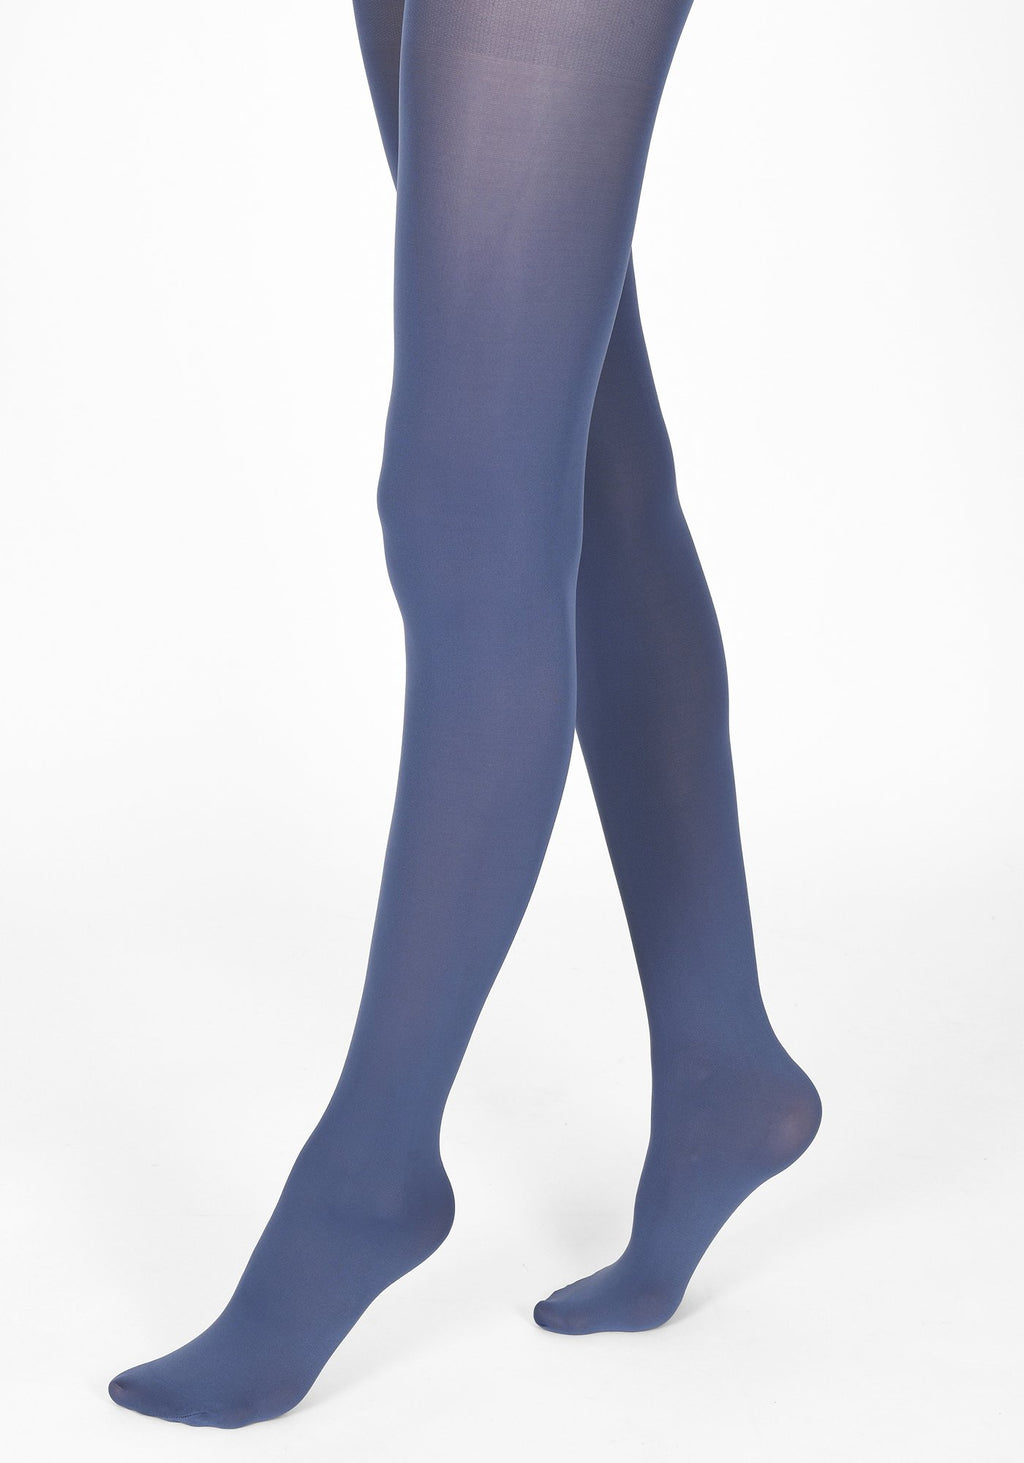 infinity blue tights 60 denier 1